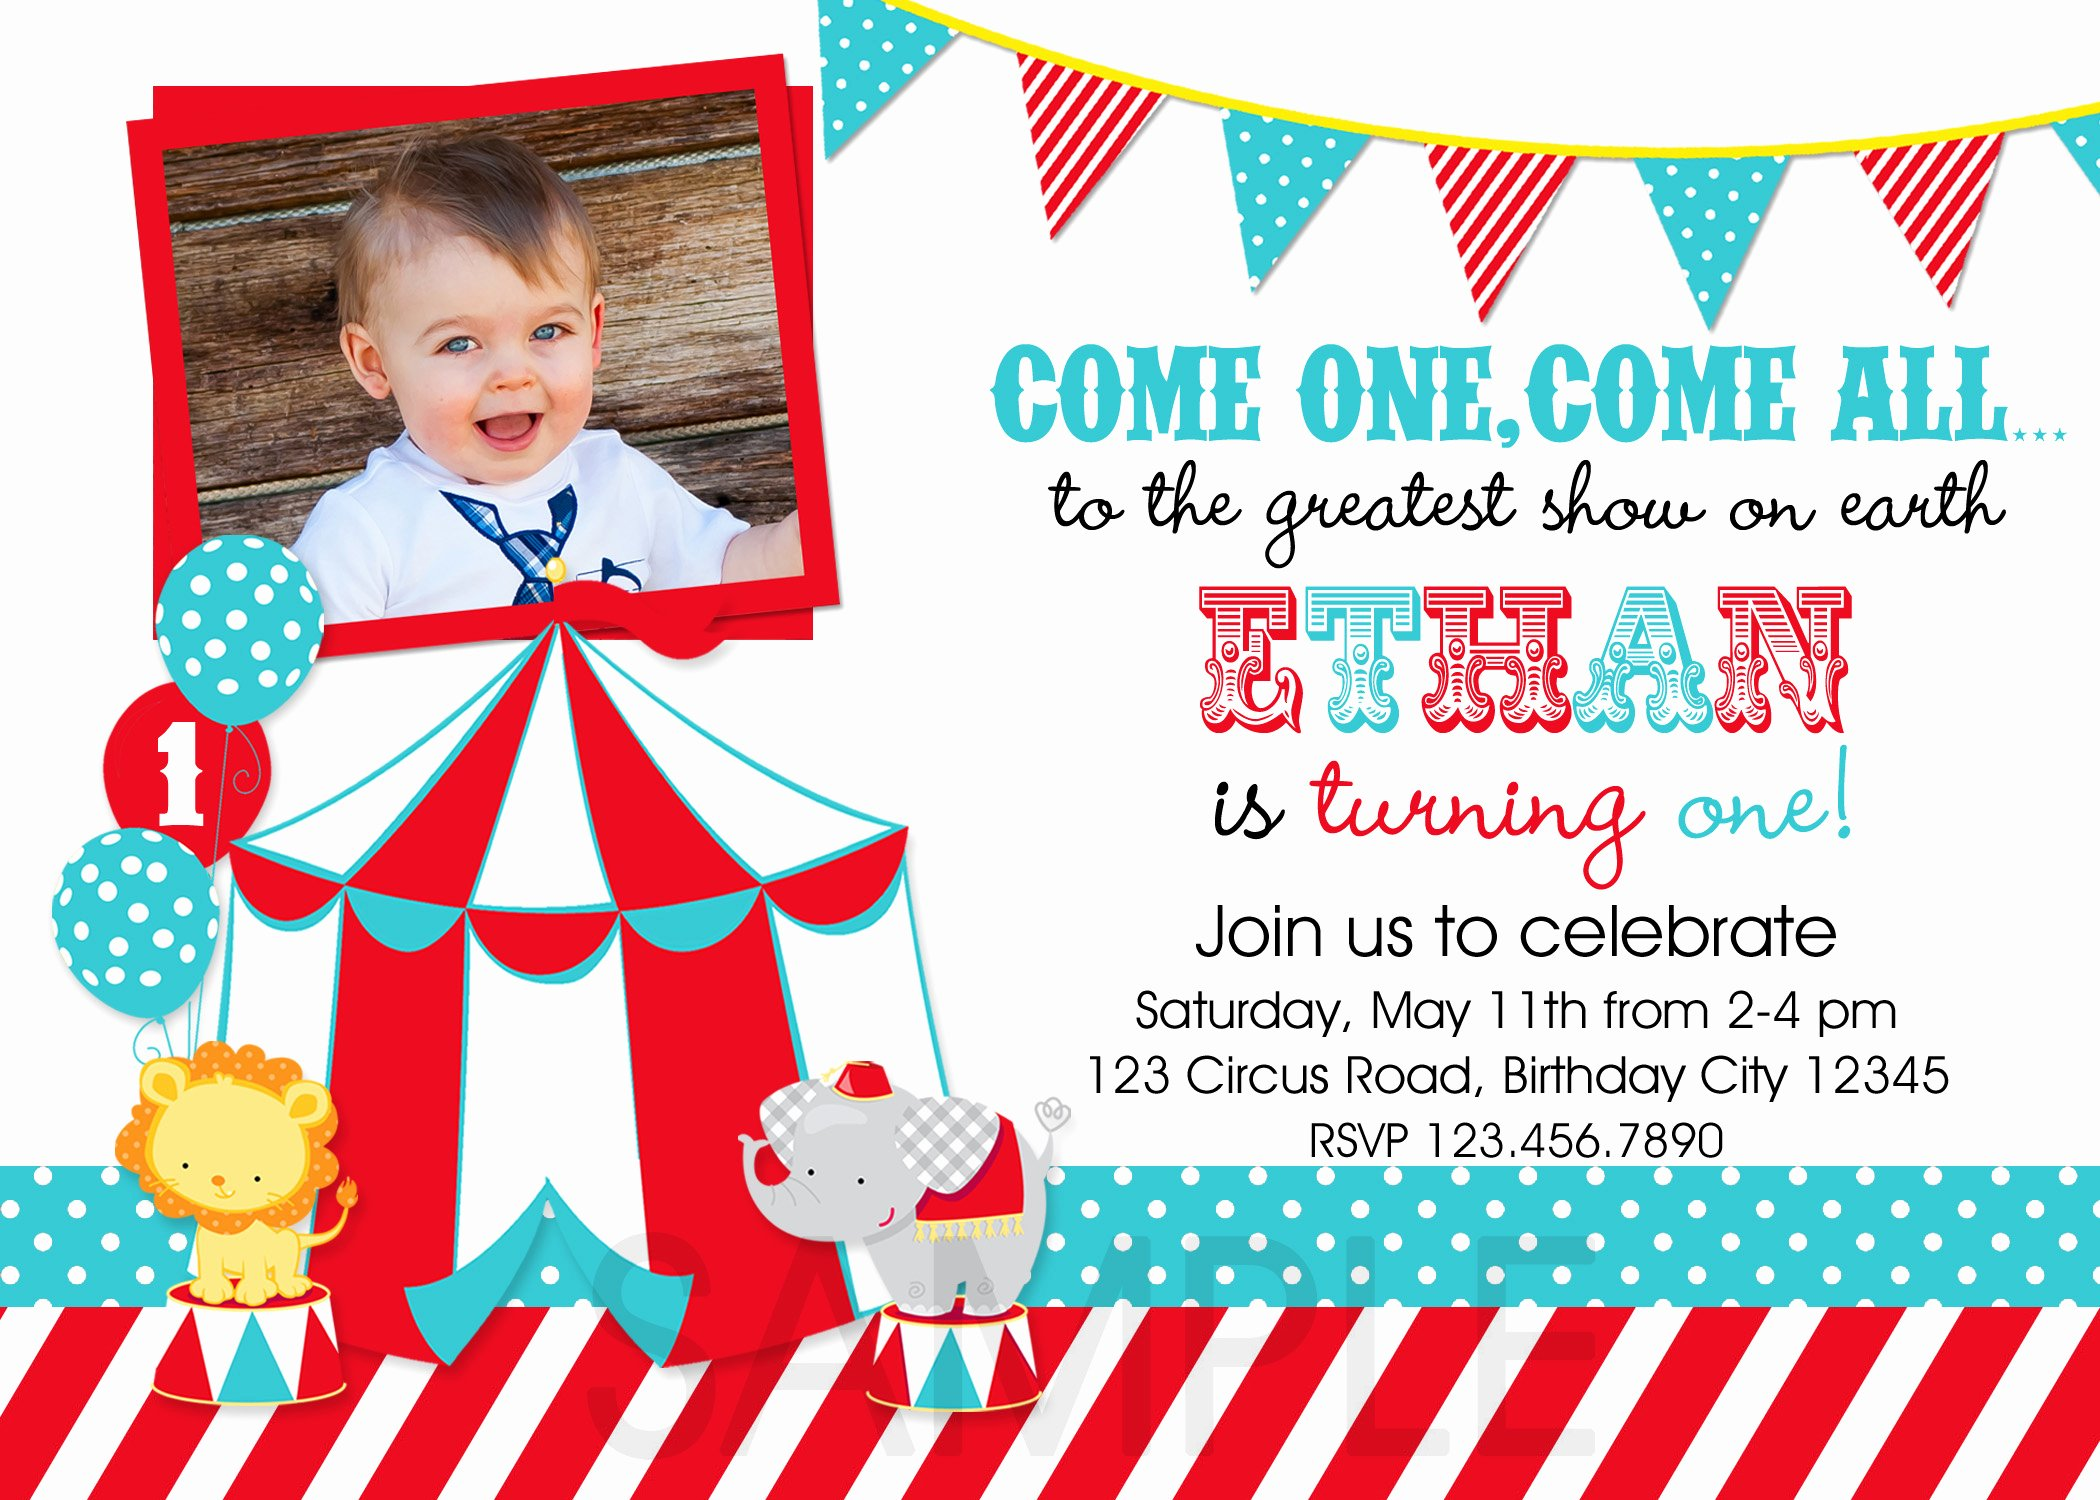 Carnival theme Party Invitations Awesome Win A $75 Gift Certificate to the Trendy butterfly